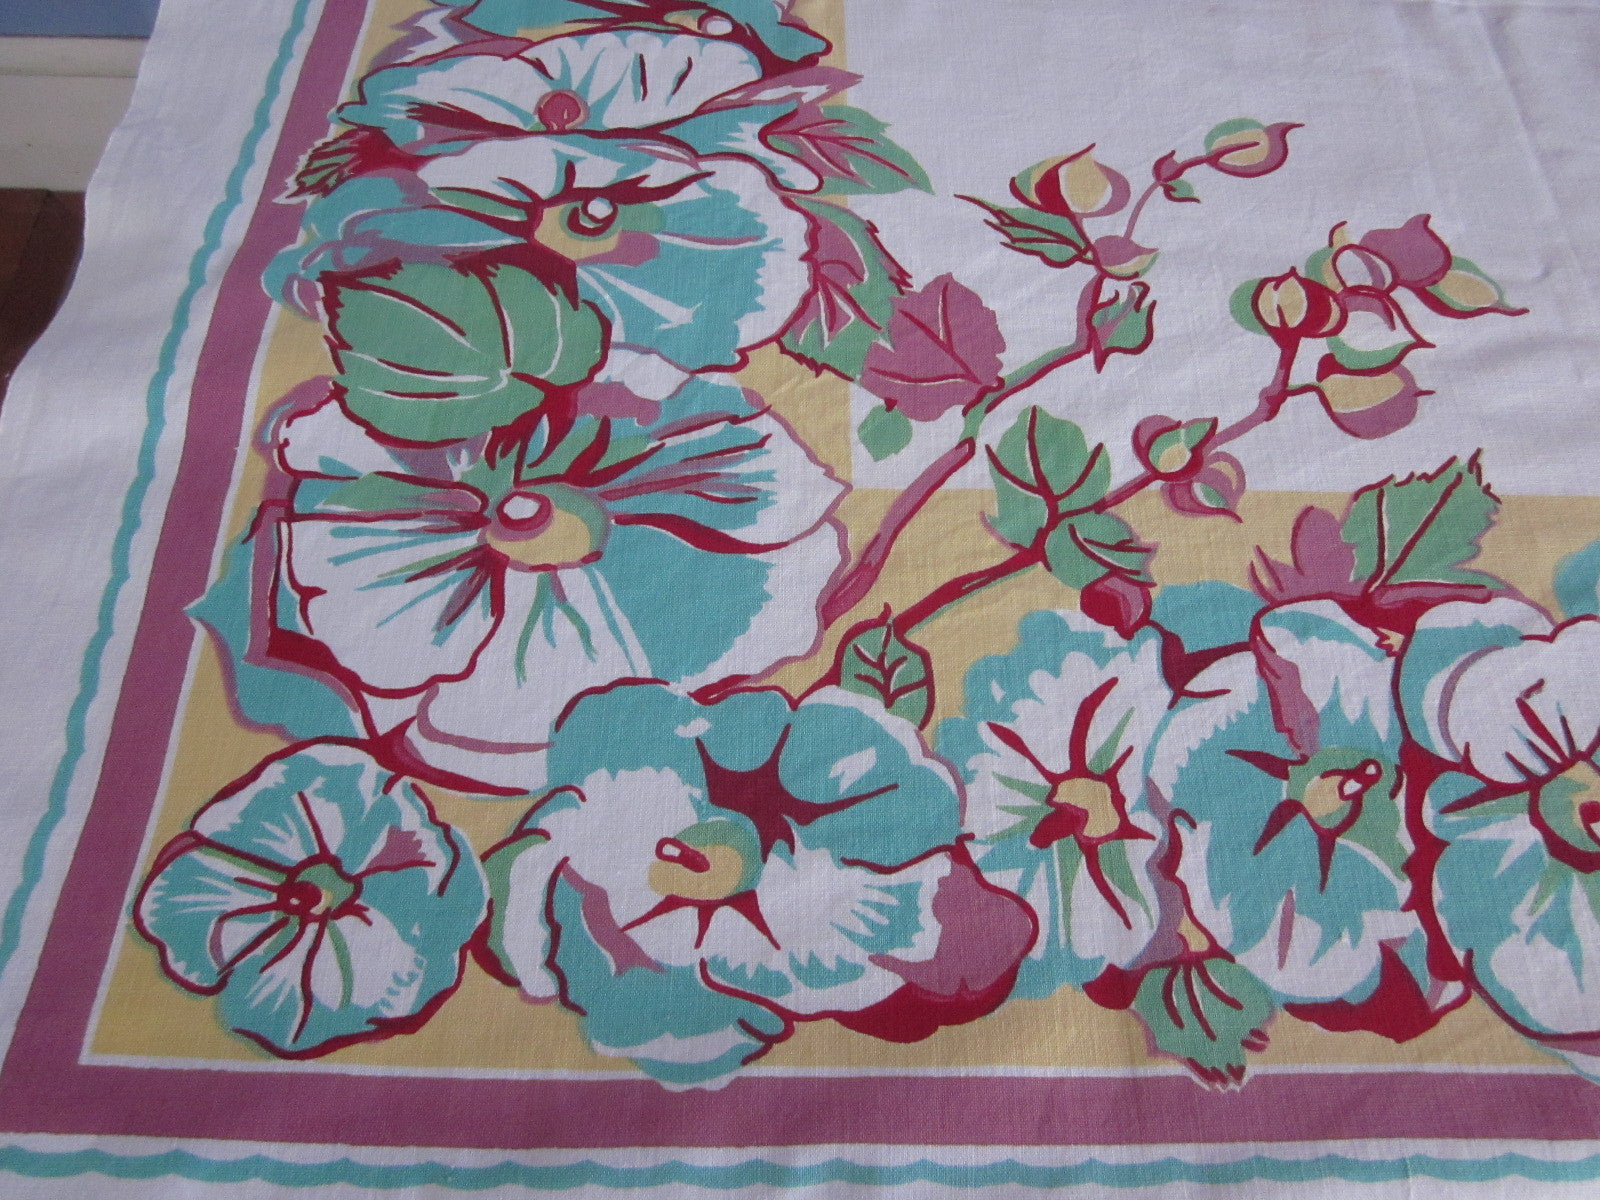 Aqua Pink Hollyhocks on Gold Floral Vintage Printed Tablecloth (52 X 48)